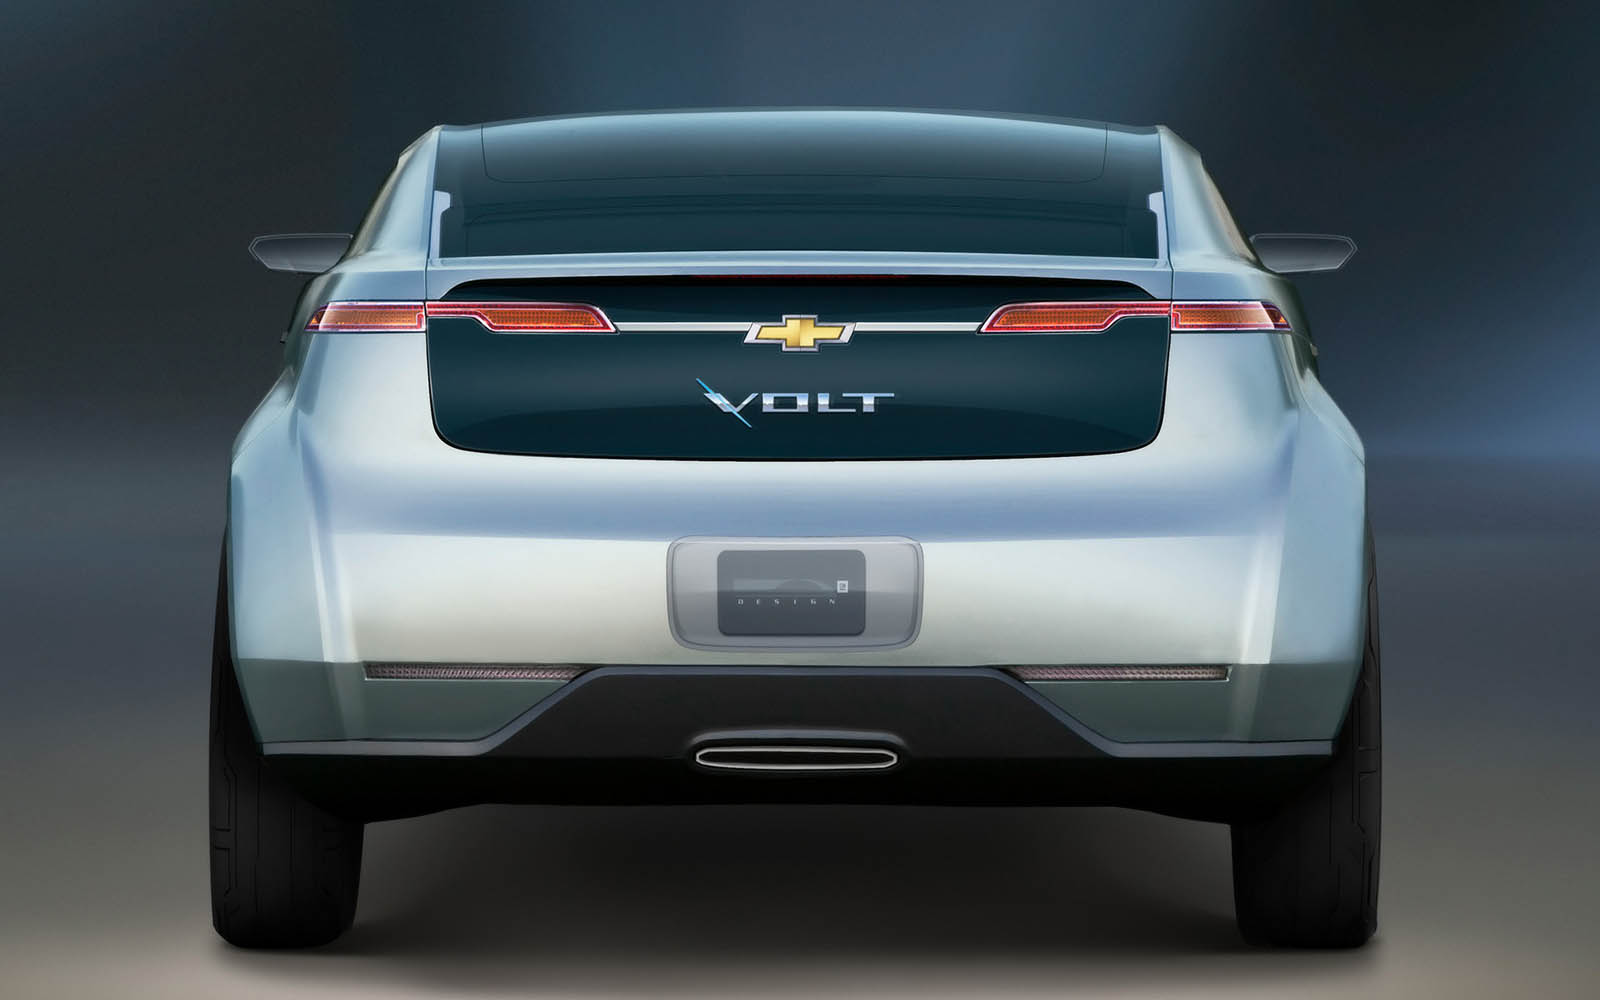 wallpapers chevrolet volt concept car photos. Black Bedroom Furniture Sets. Home Design Ideas